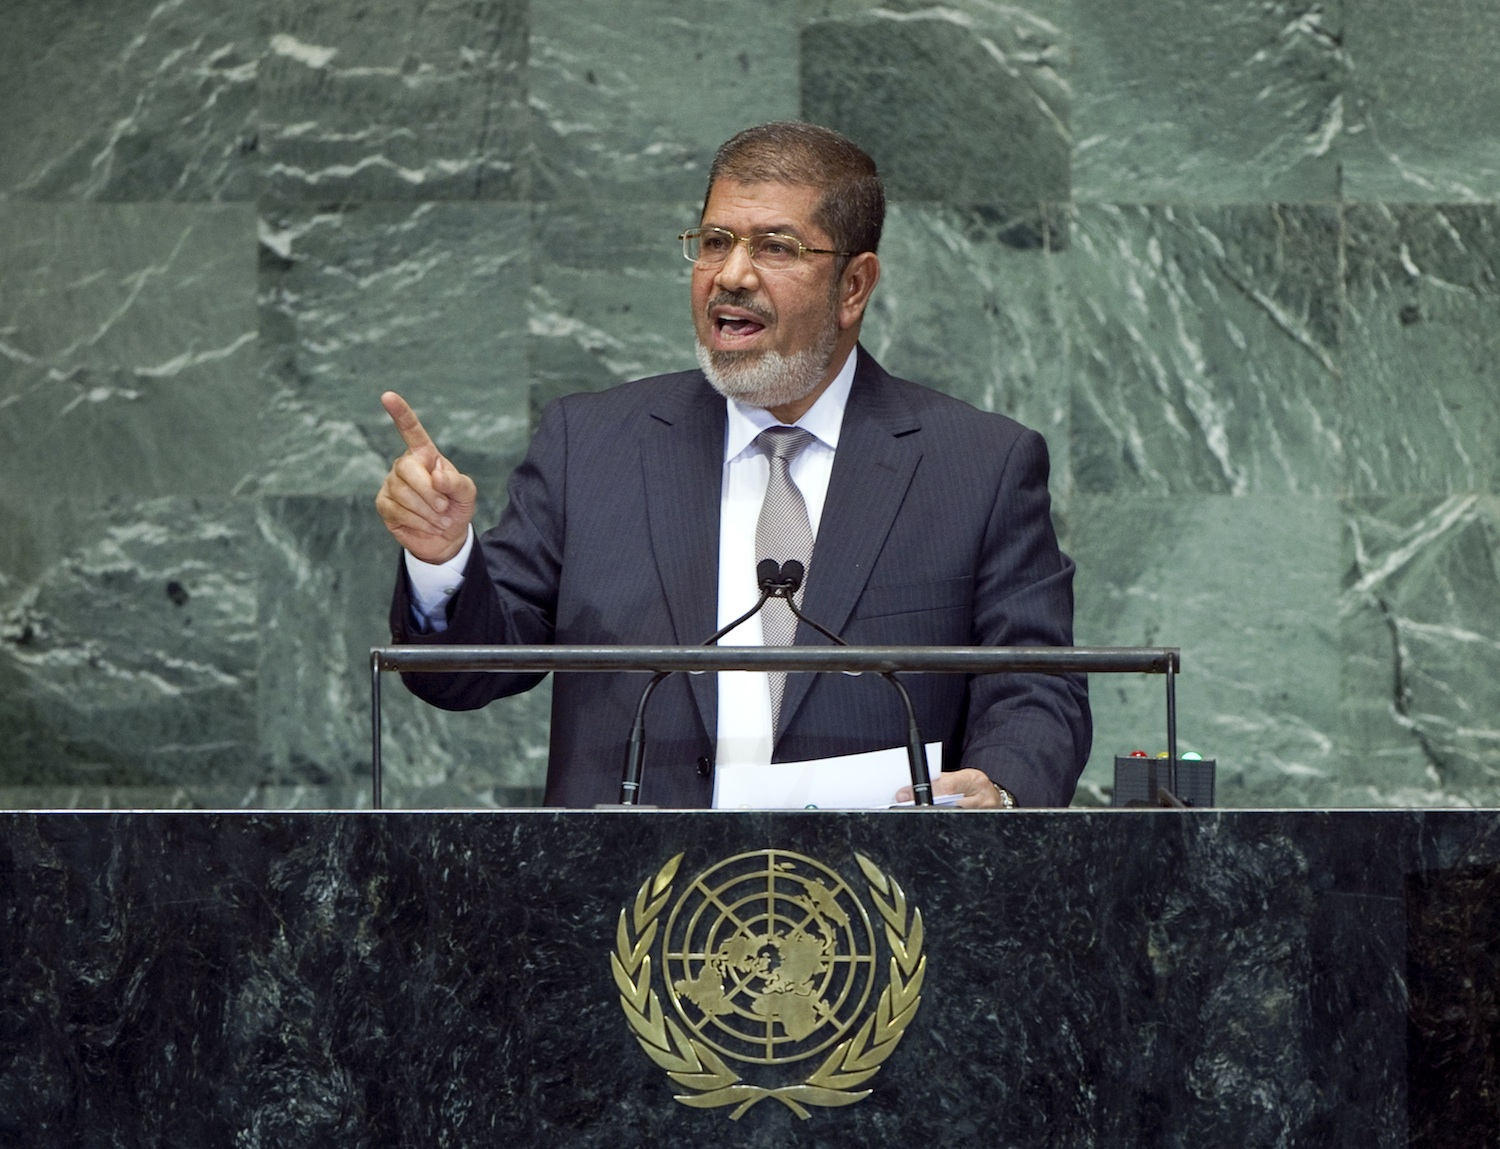 Click photo to download. Caption: Egyptian President Mohamed Morsi, seen speaking to the United Nations General Assembly, on Sept. 26, 2012, is overseeing a country with growing religious violence, particularly against Coptic Christians. Credit:UN Photo/Marco Castro.